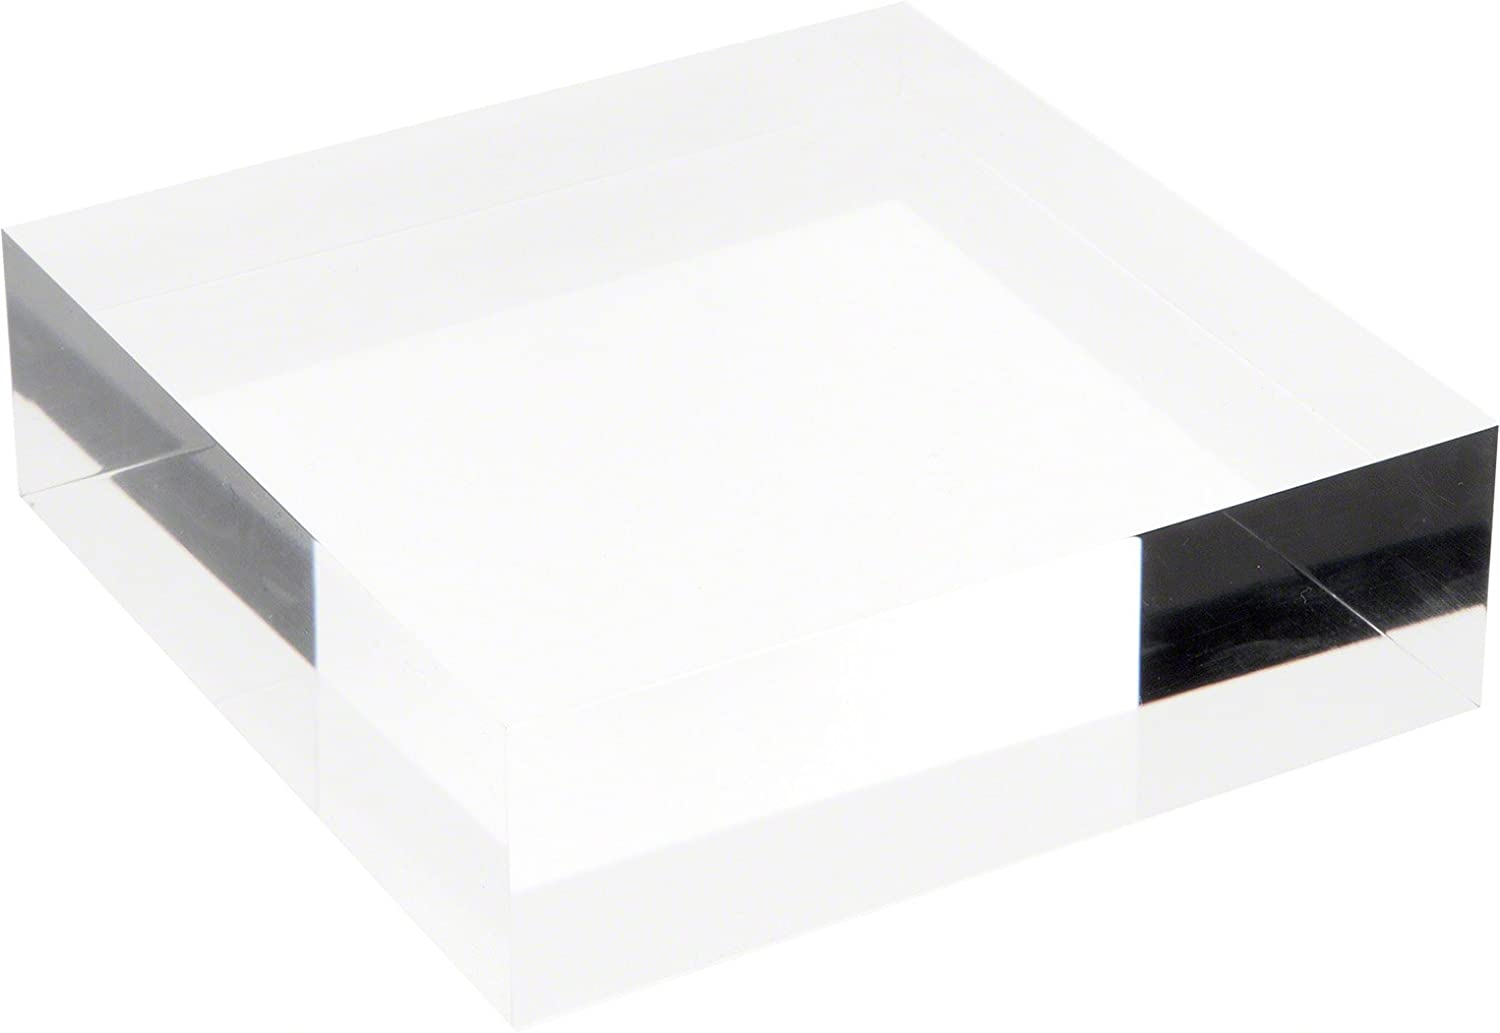 Plymor Clear Polished Acrylic Square Display Block, 1.5 H x 6 W x 6 D